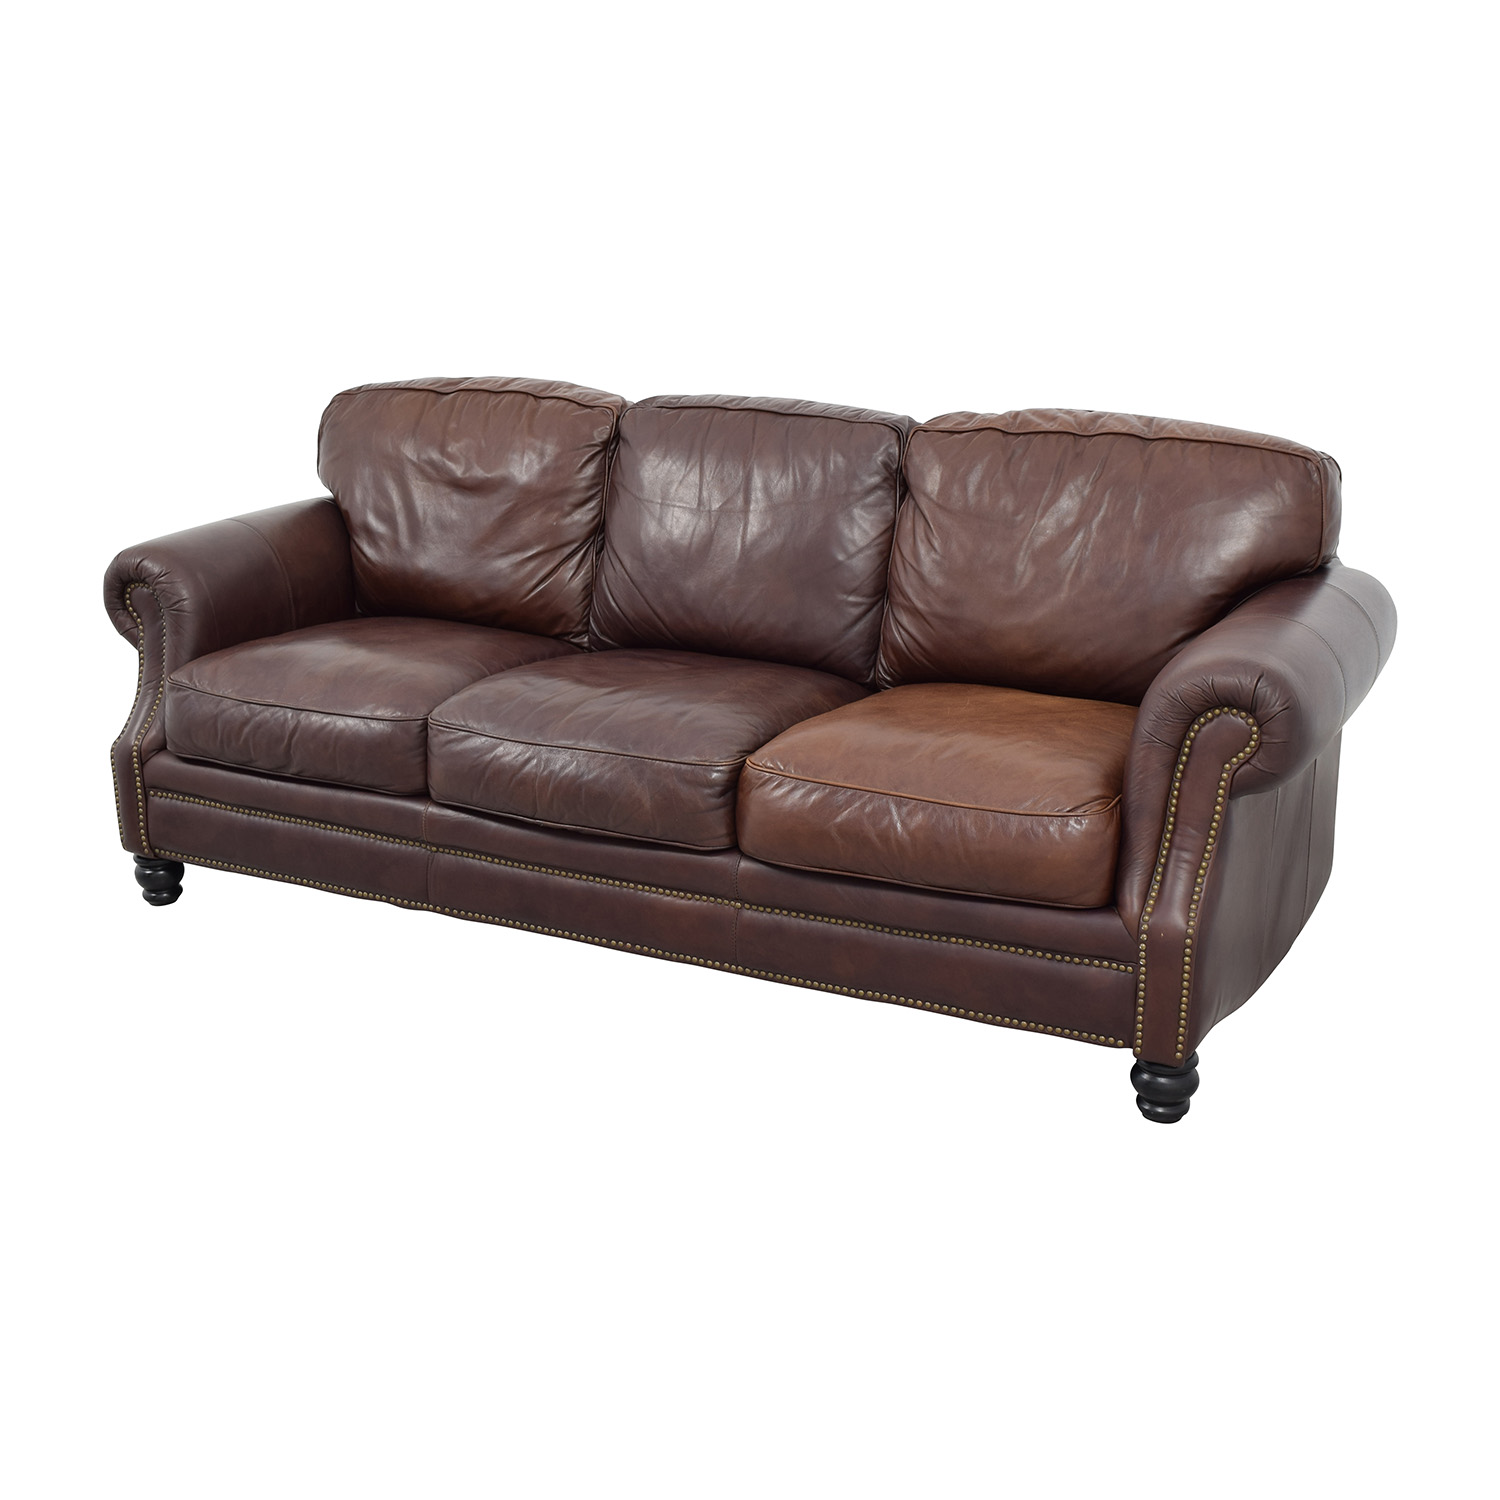 brown leather studded sofa off white 2143 modern reclining sectional by esf 61 three cushion sofas